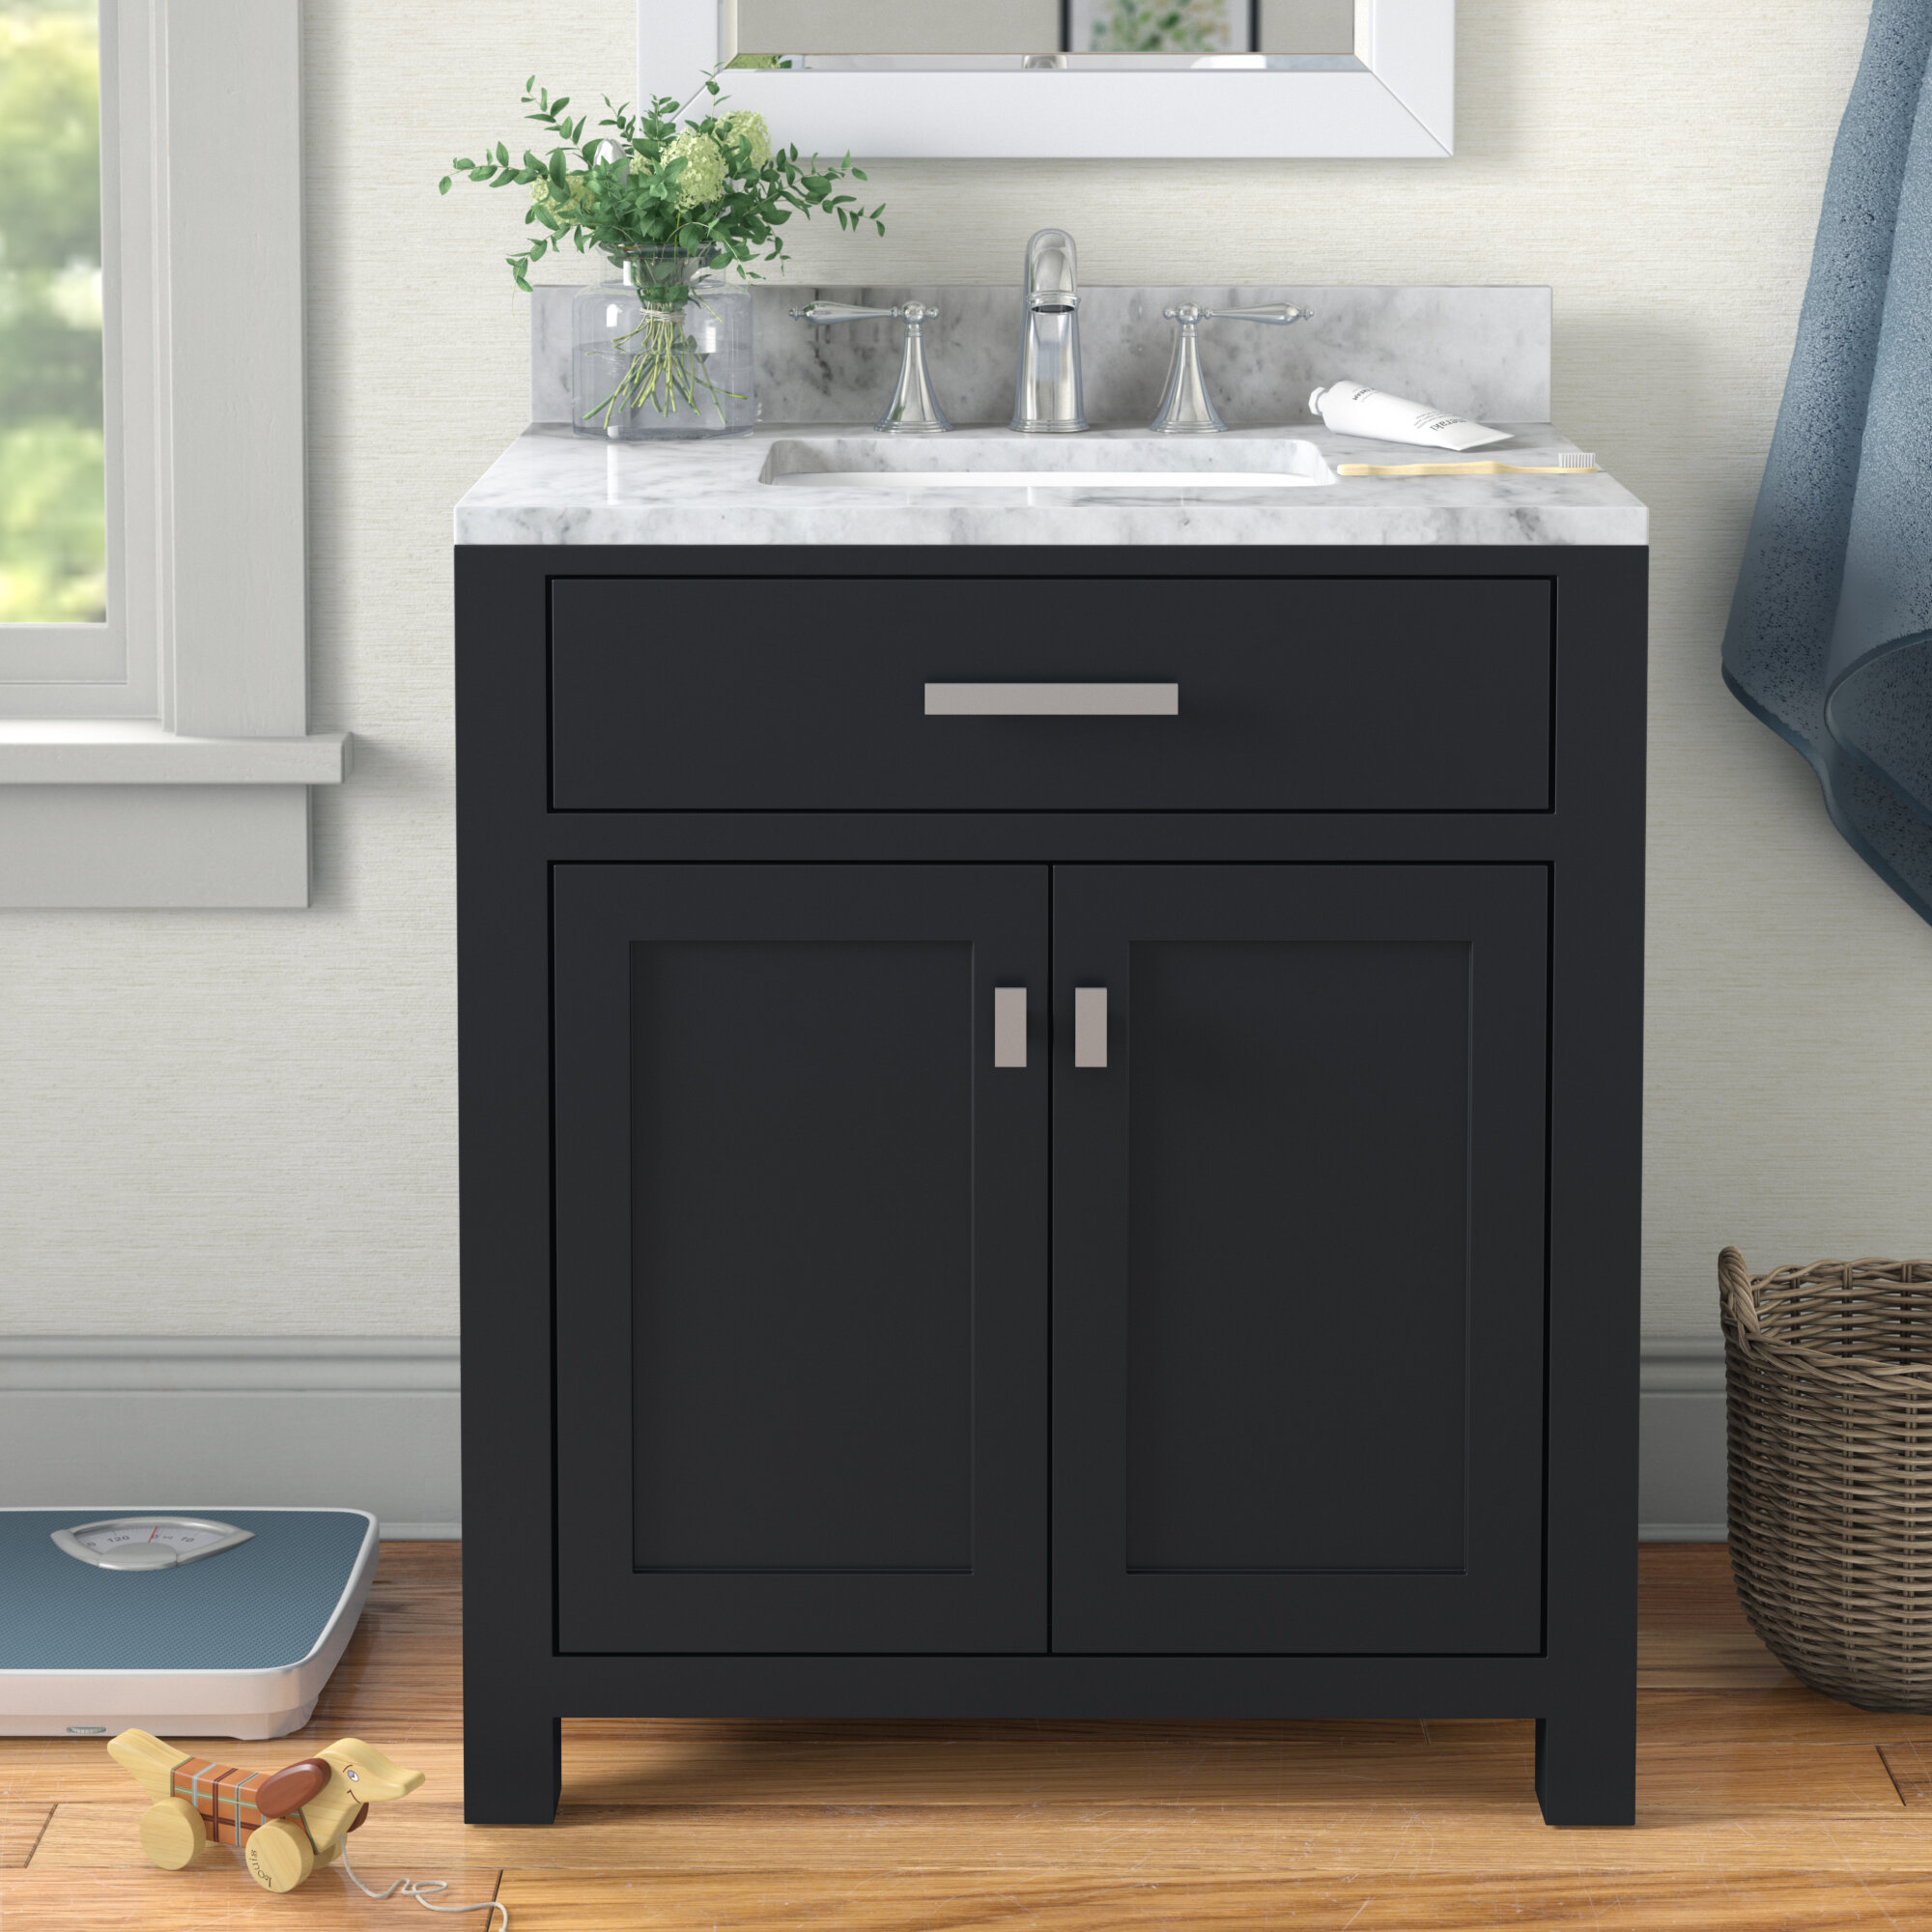 Solid Wood Bathroom Vanities Free Shipping Over 35 Wayfair